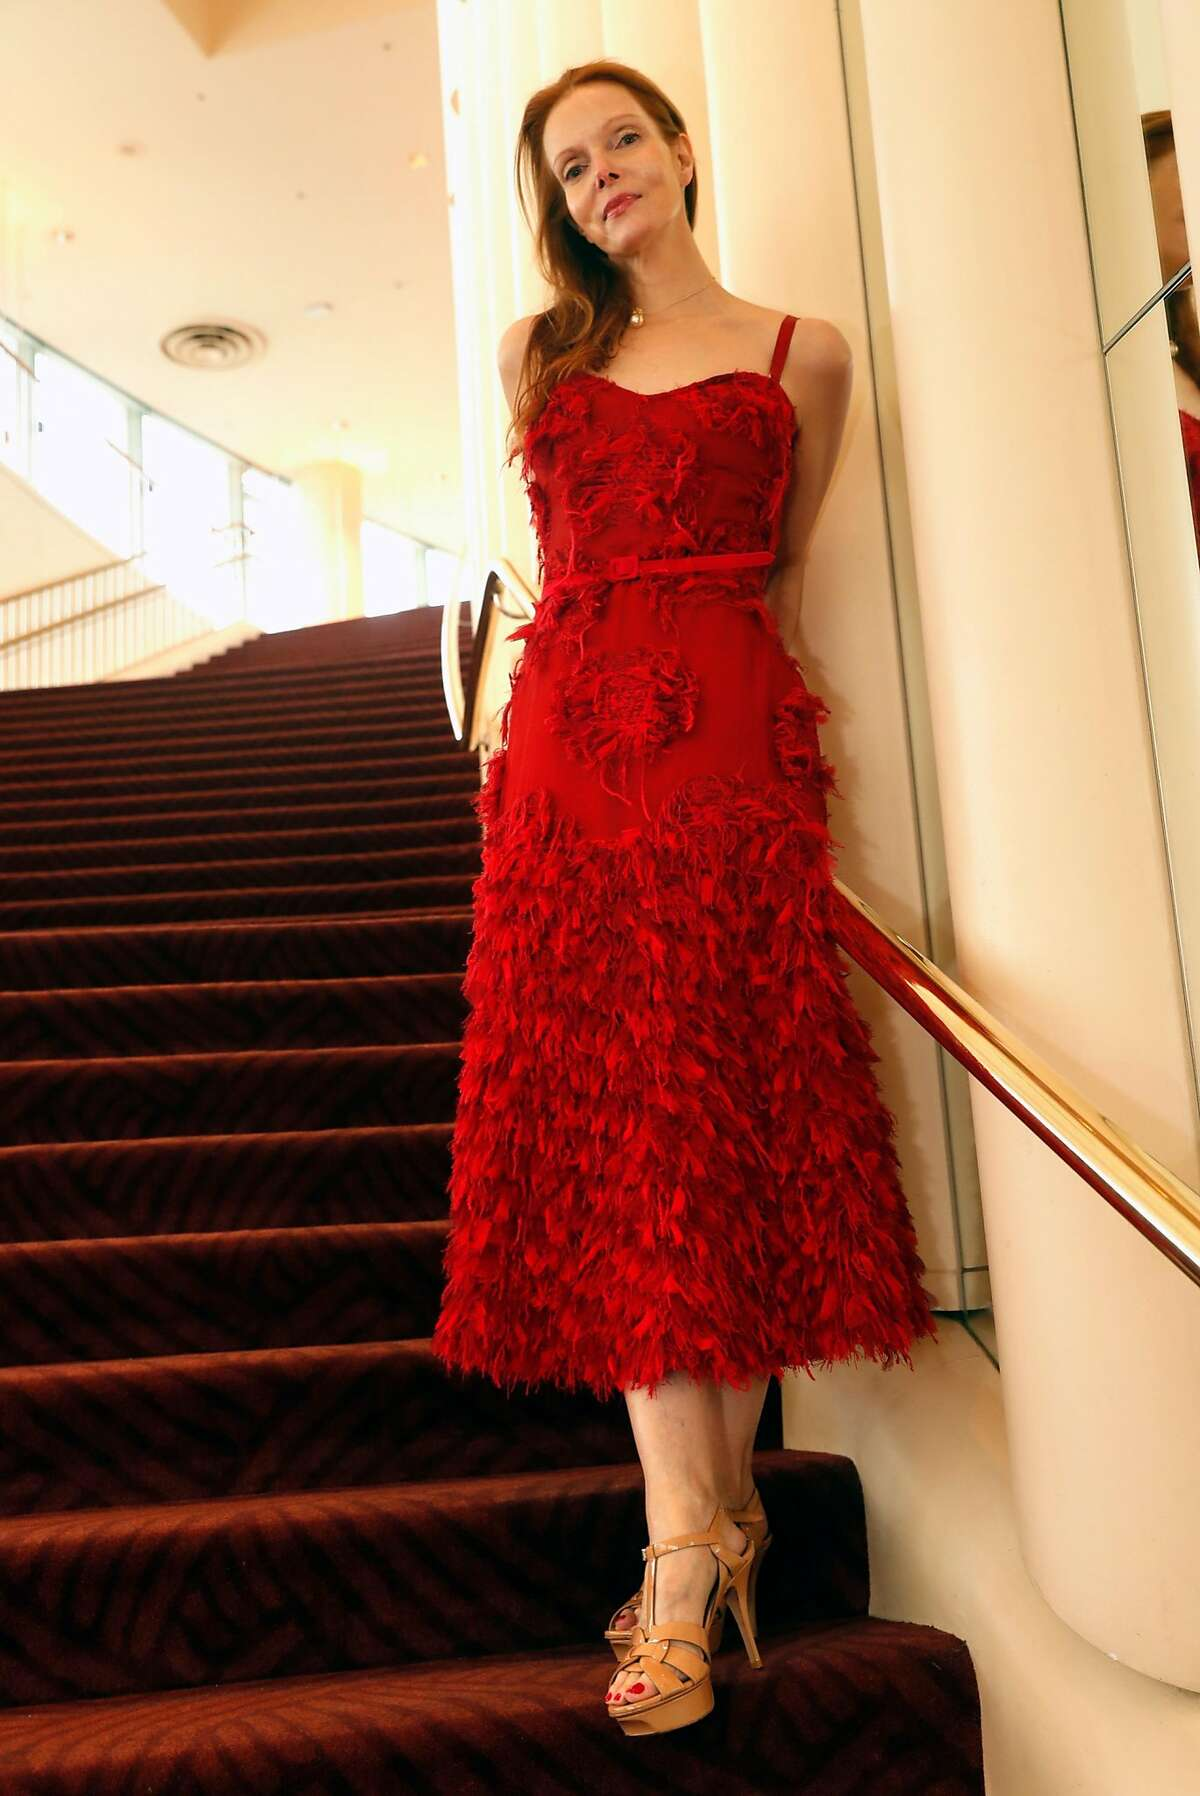 Sara Steingart wearing Alexander McQueen before Symphony Gala at Davies Symphony Hall in San Francisco, Calif. on Wednesday, September 5, 2018.